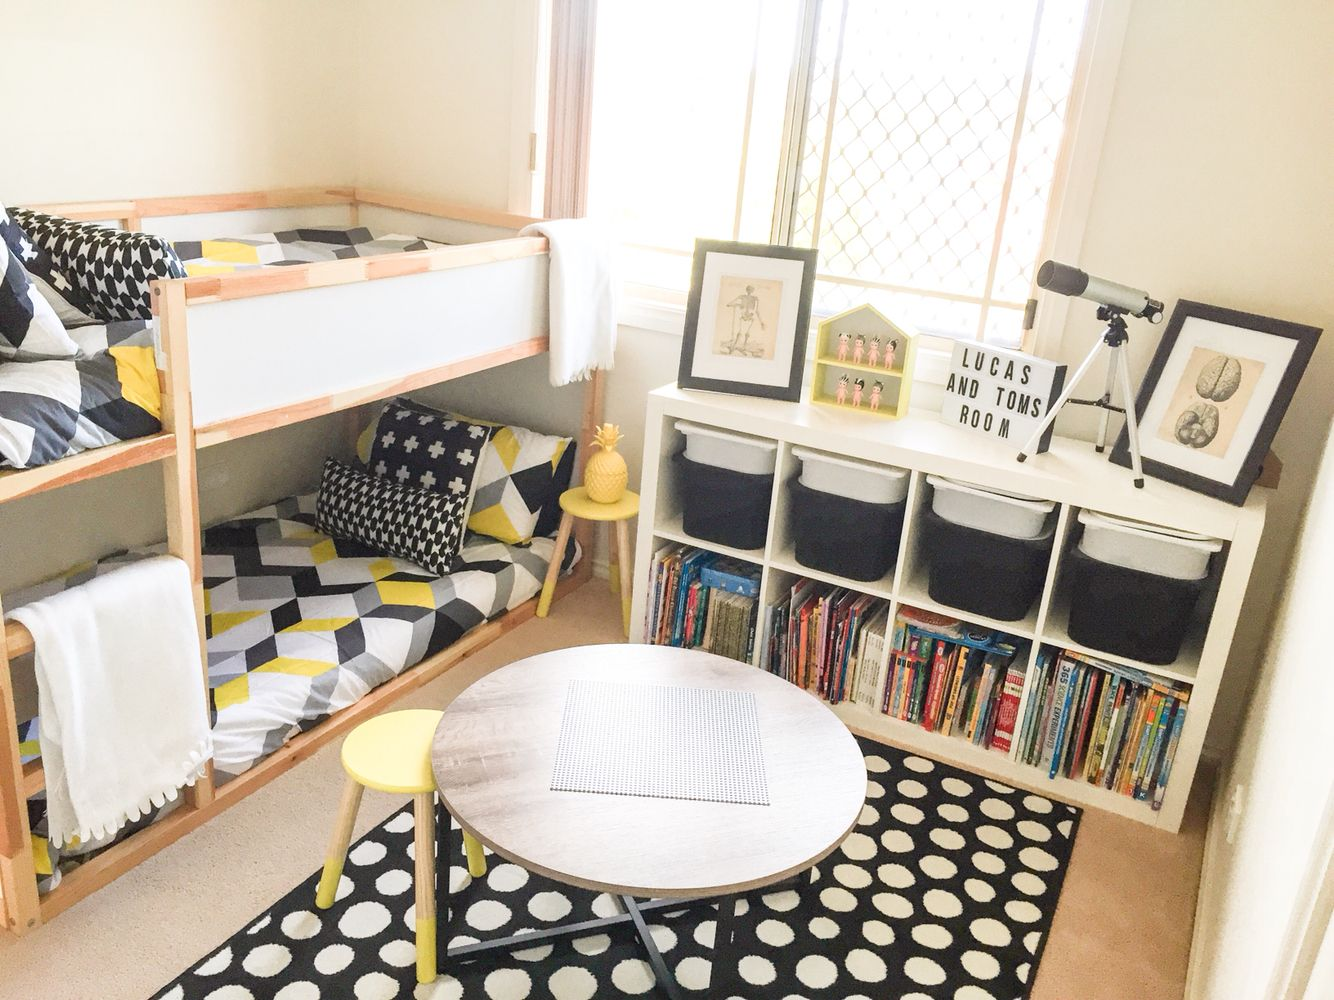 Shared Boys Geometrical Bedroom. Combination Of IKEA And Kmart Stylingu2026